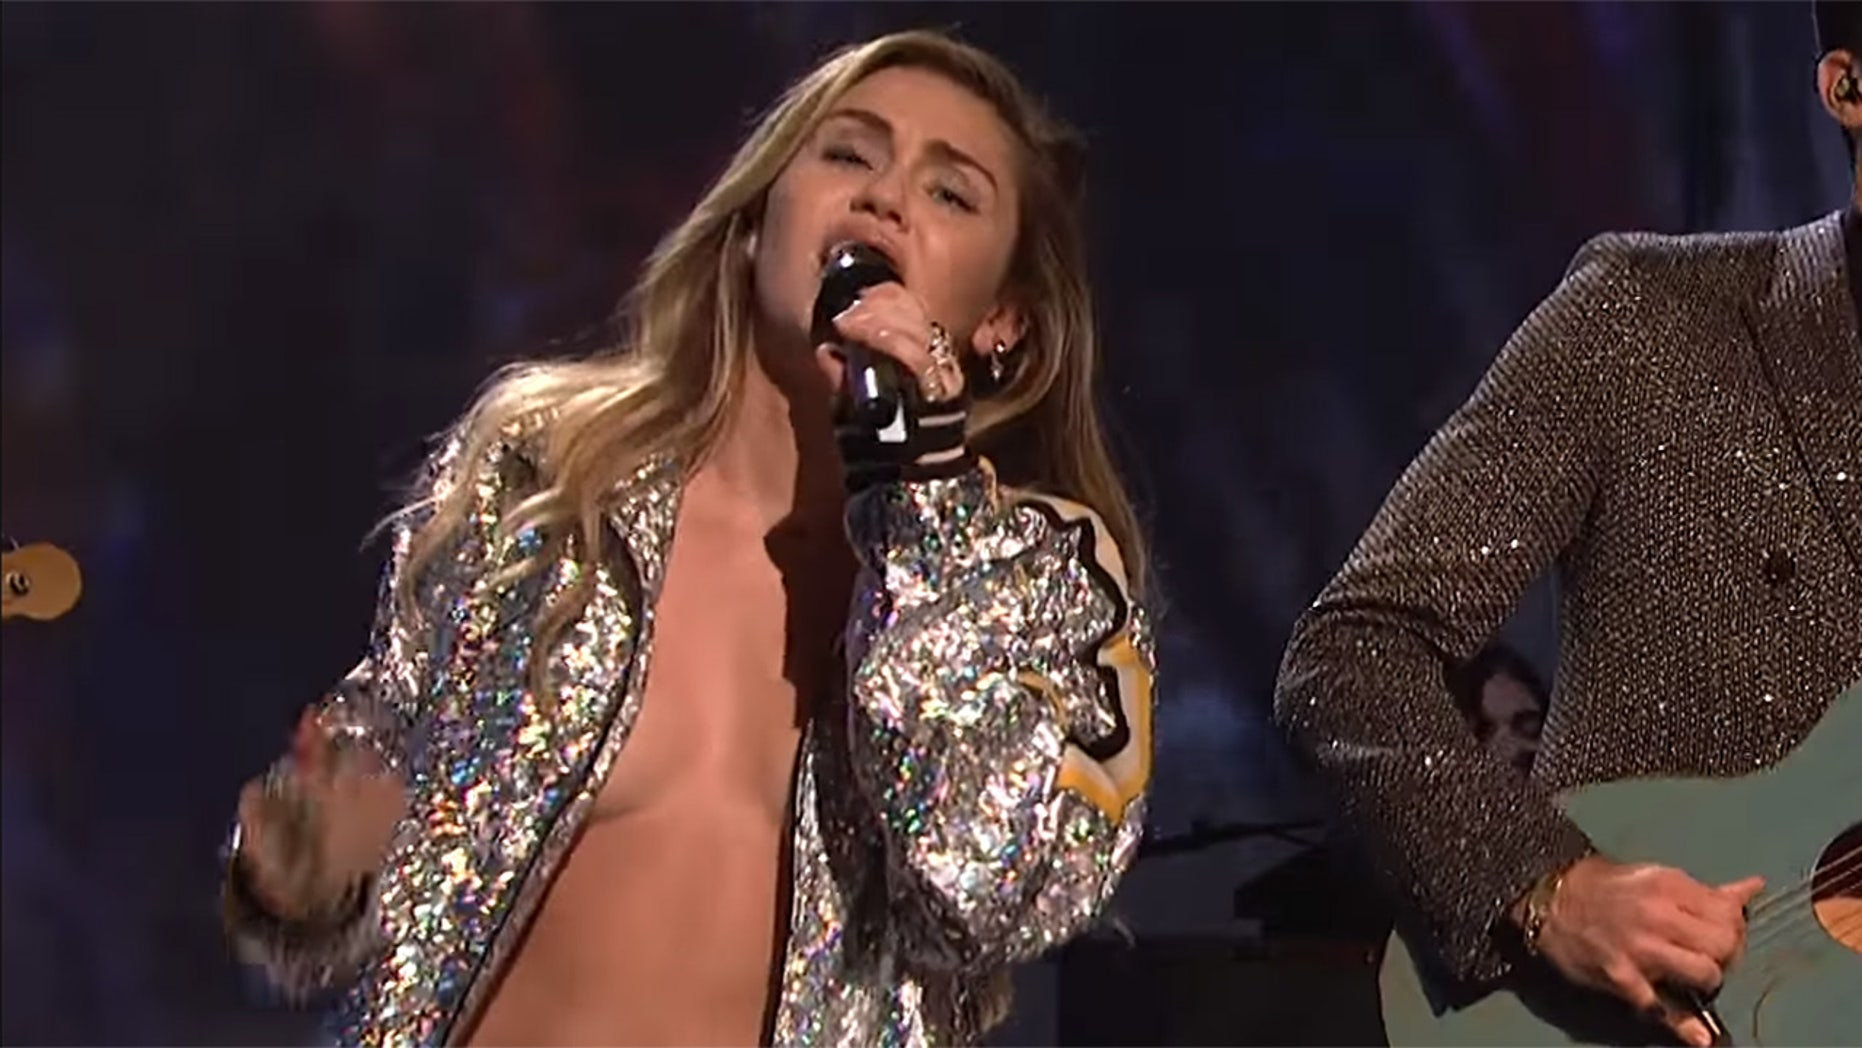 Watch Miley Cyrus and Mark Ronson Perform on SNL